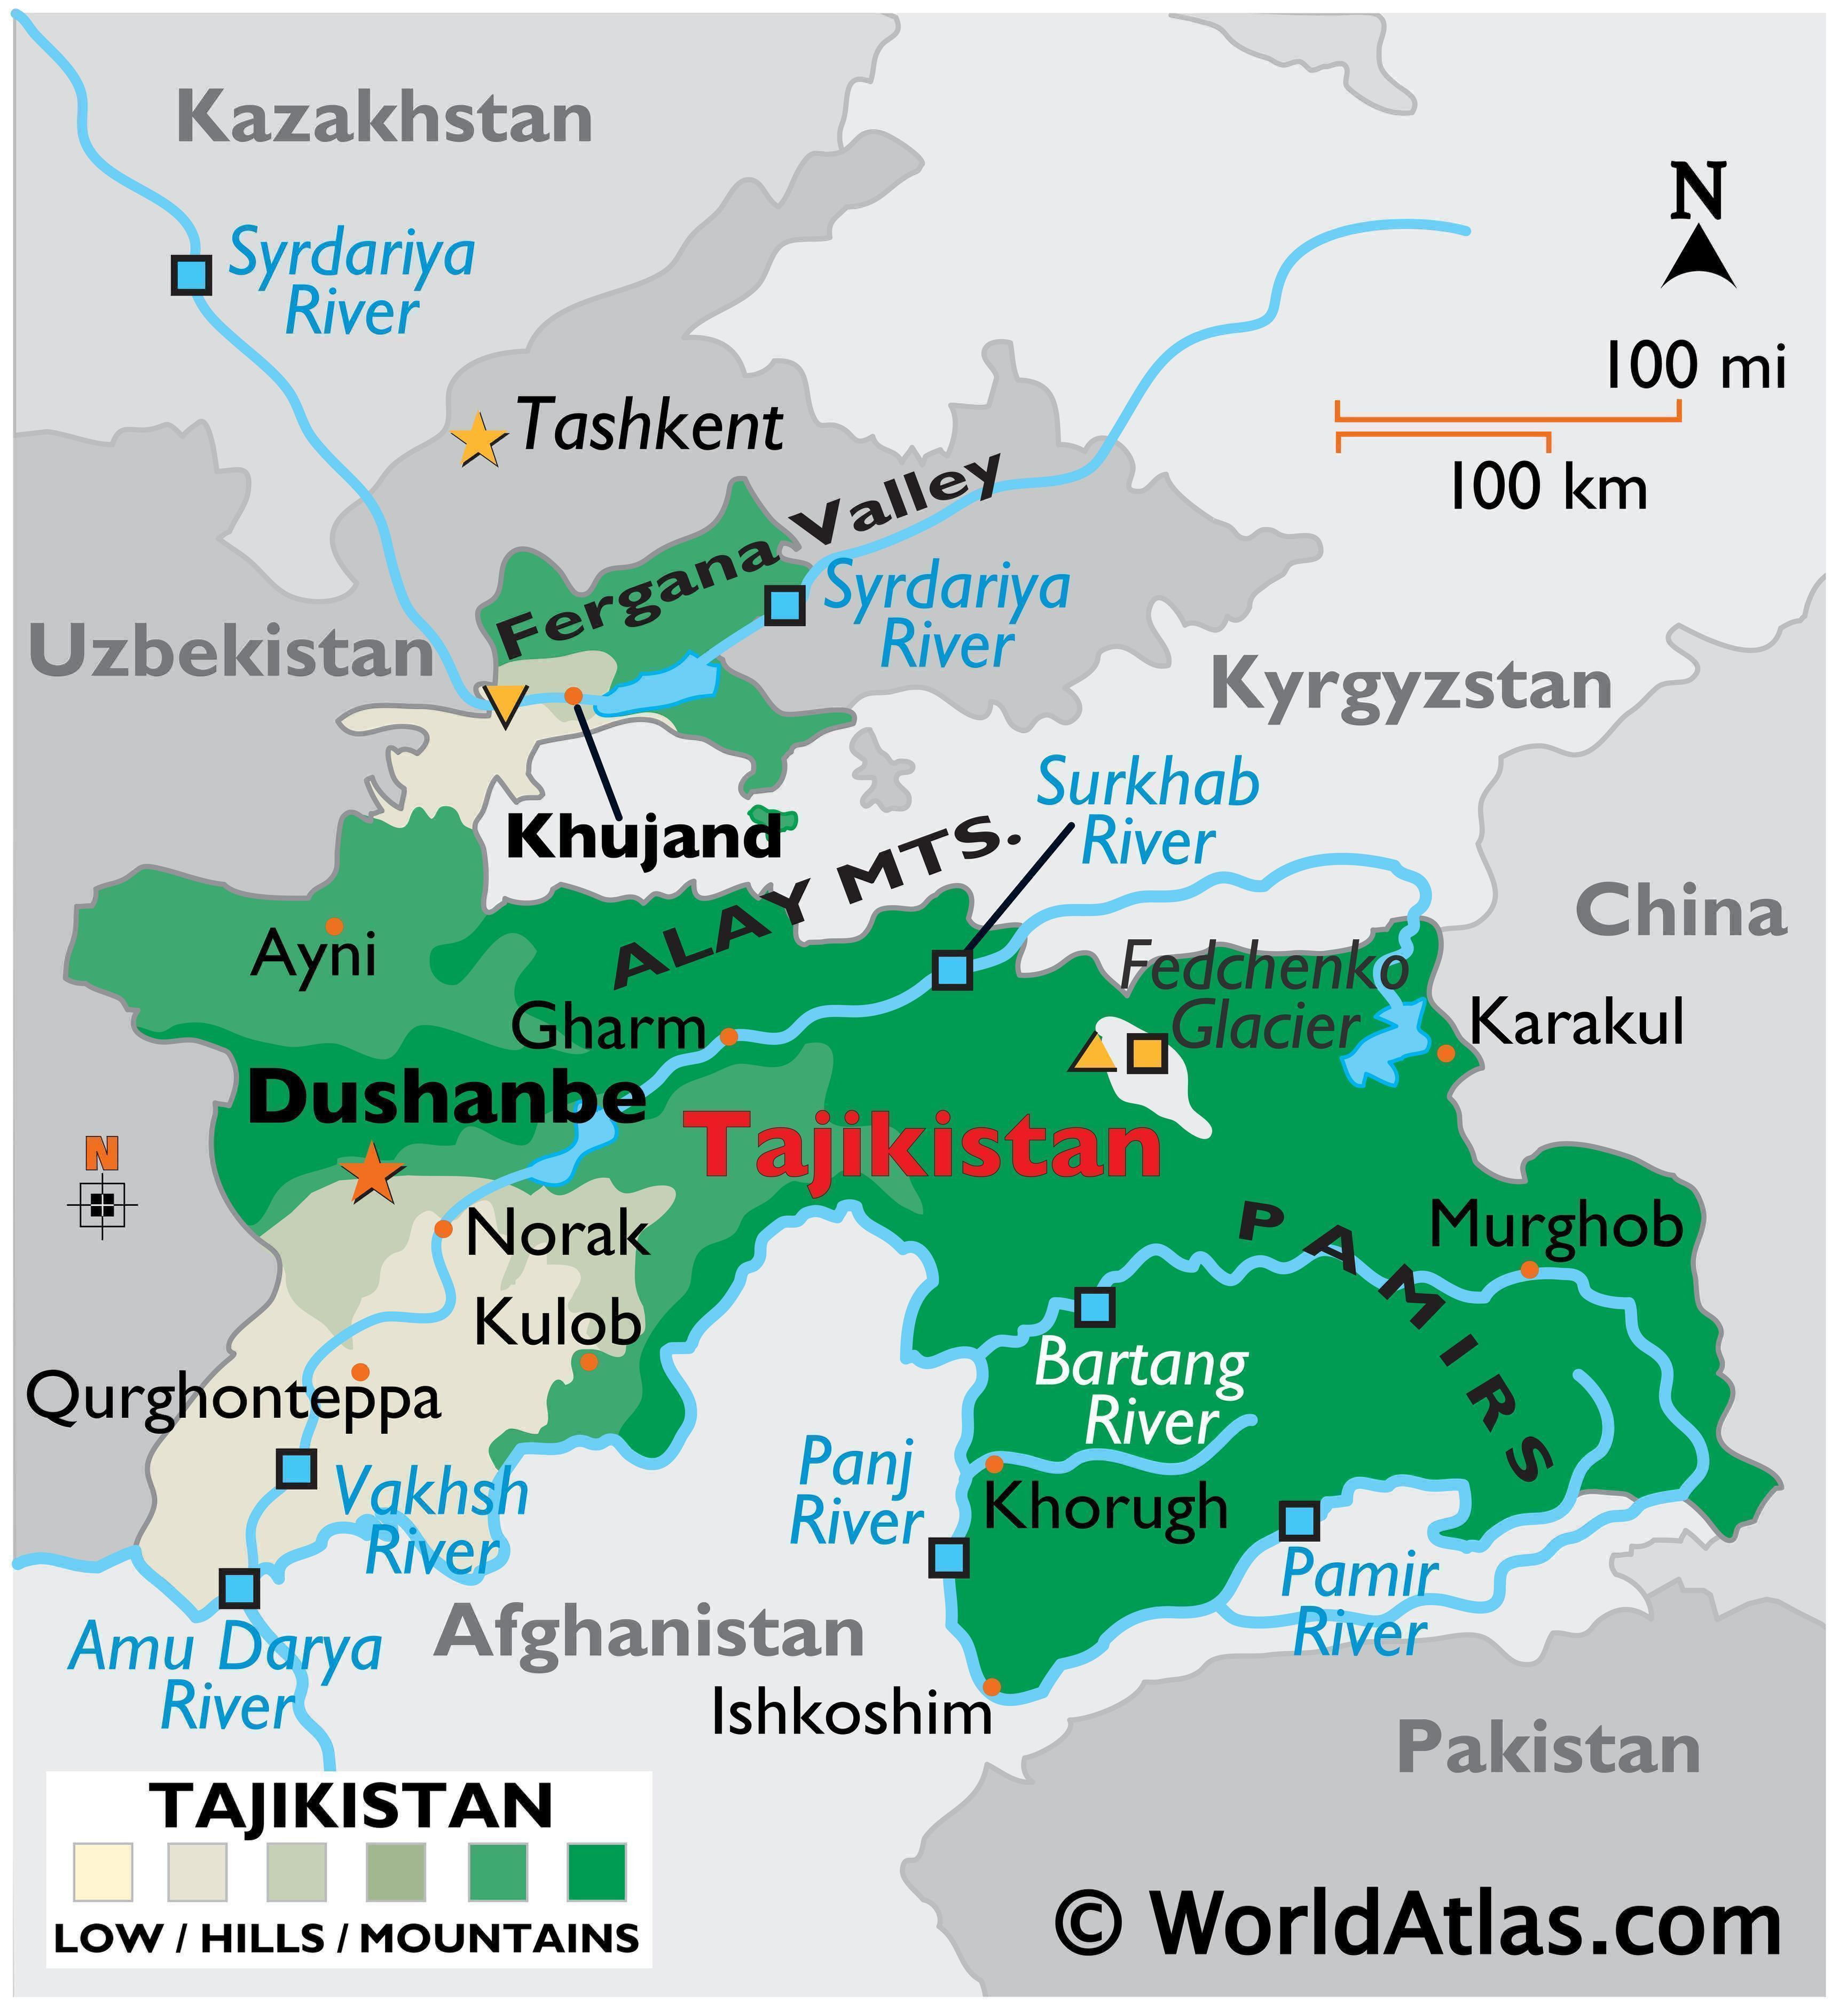 Phyiscal Map of Tajikistan with state boundaries, relief, major mountain ranges, rivers, Fedchenko Glacier, Fergana Valley, extreme points, etc.